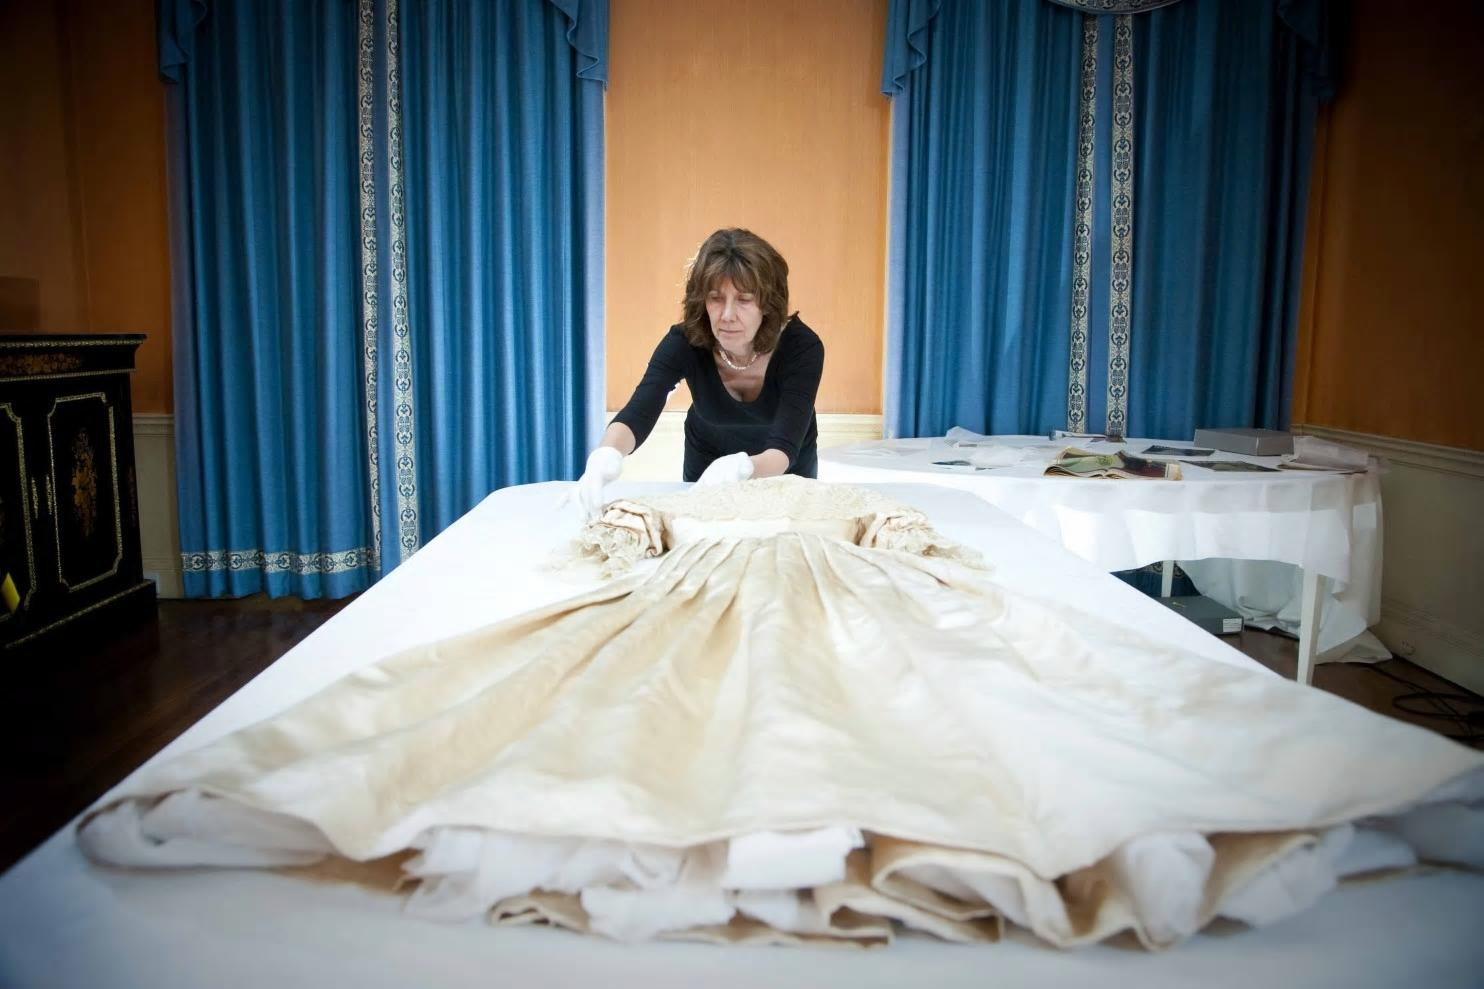 The silk satin wedding dress worn by Queen Victoria in 1840, when she married Albert Saxe-Coburg, is prepared by a conservator for conservation work to begin.